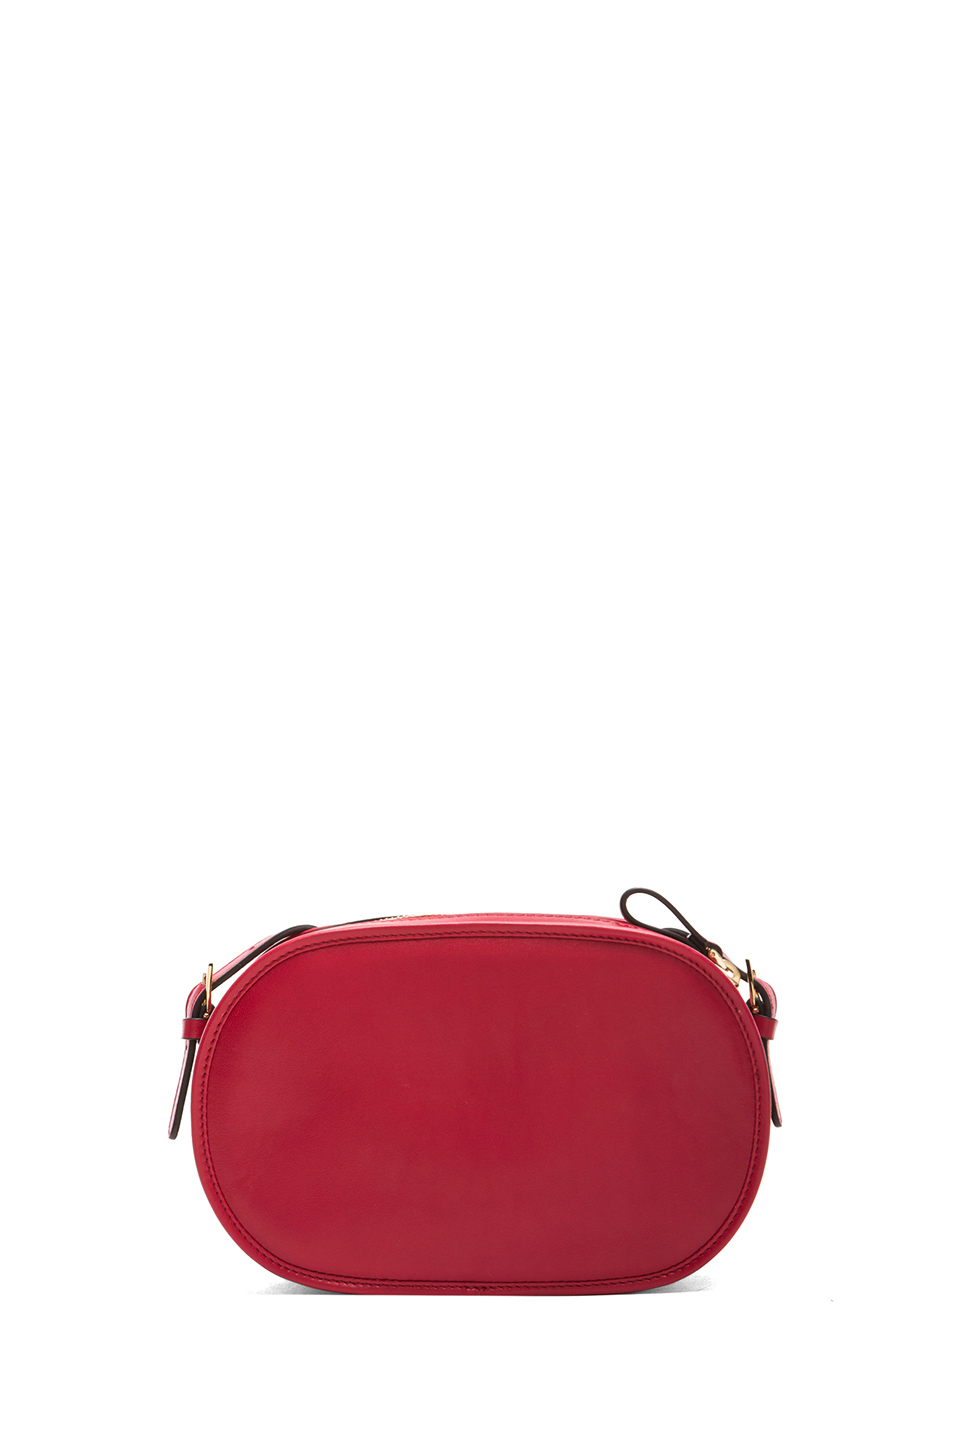 Valentino | Small Logo Go Cross Body Bag in Red